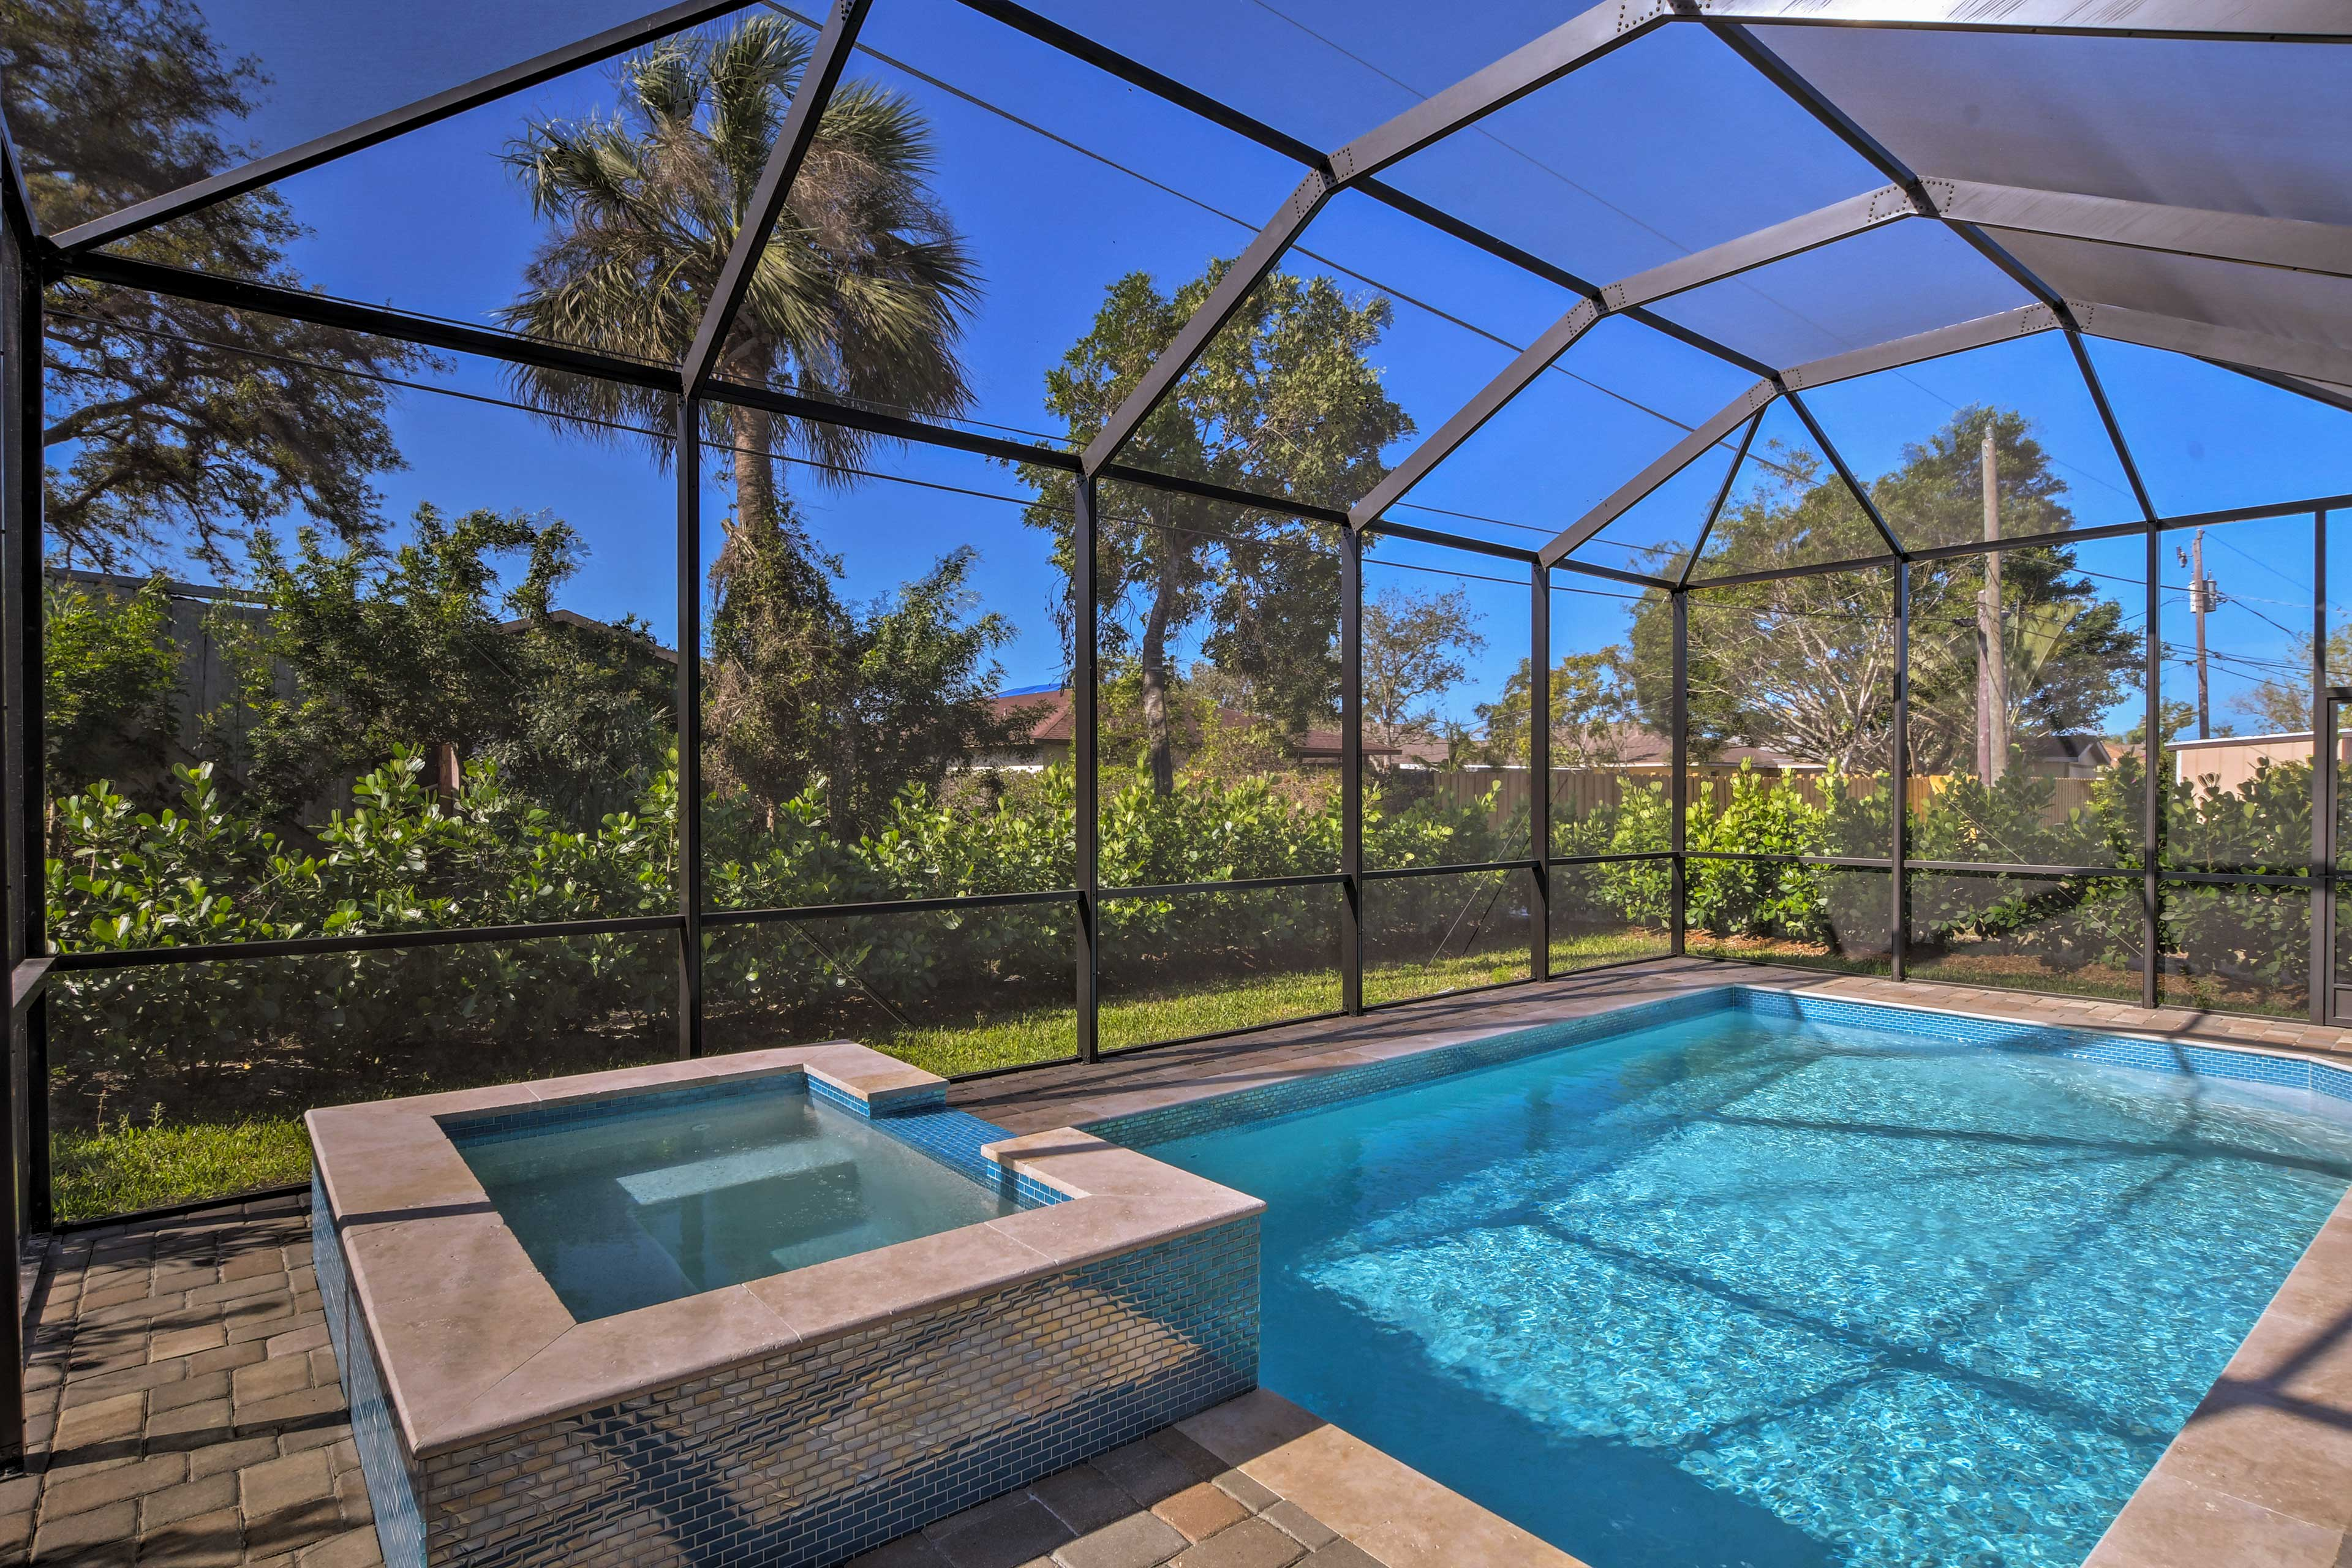 The pool and spa can be heated for no additional fee.